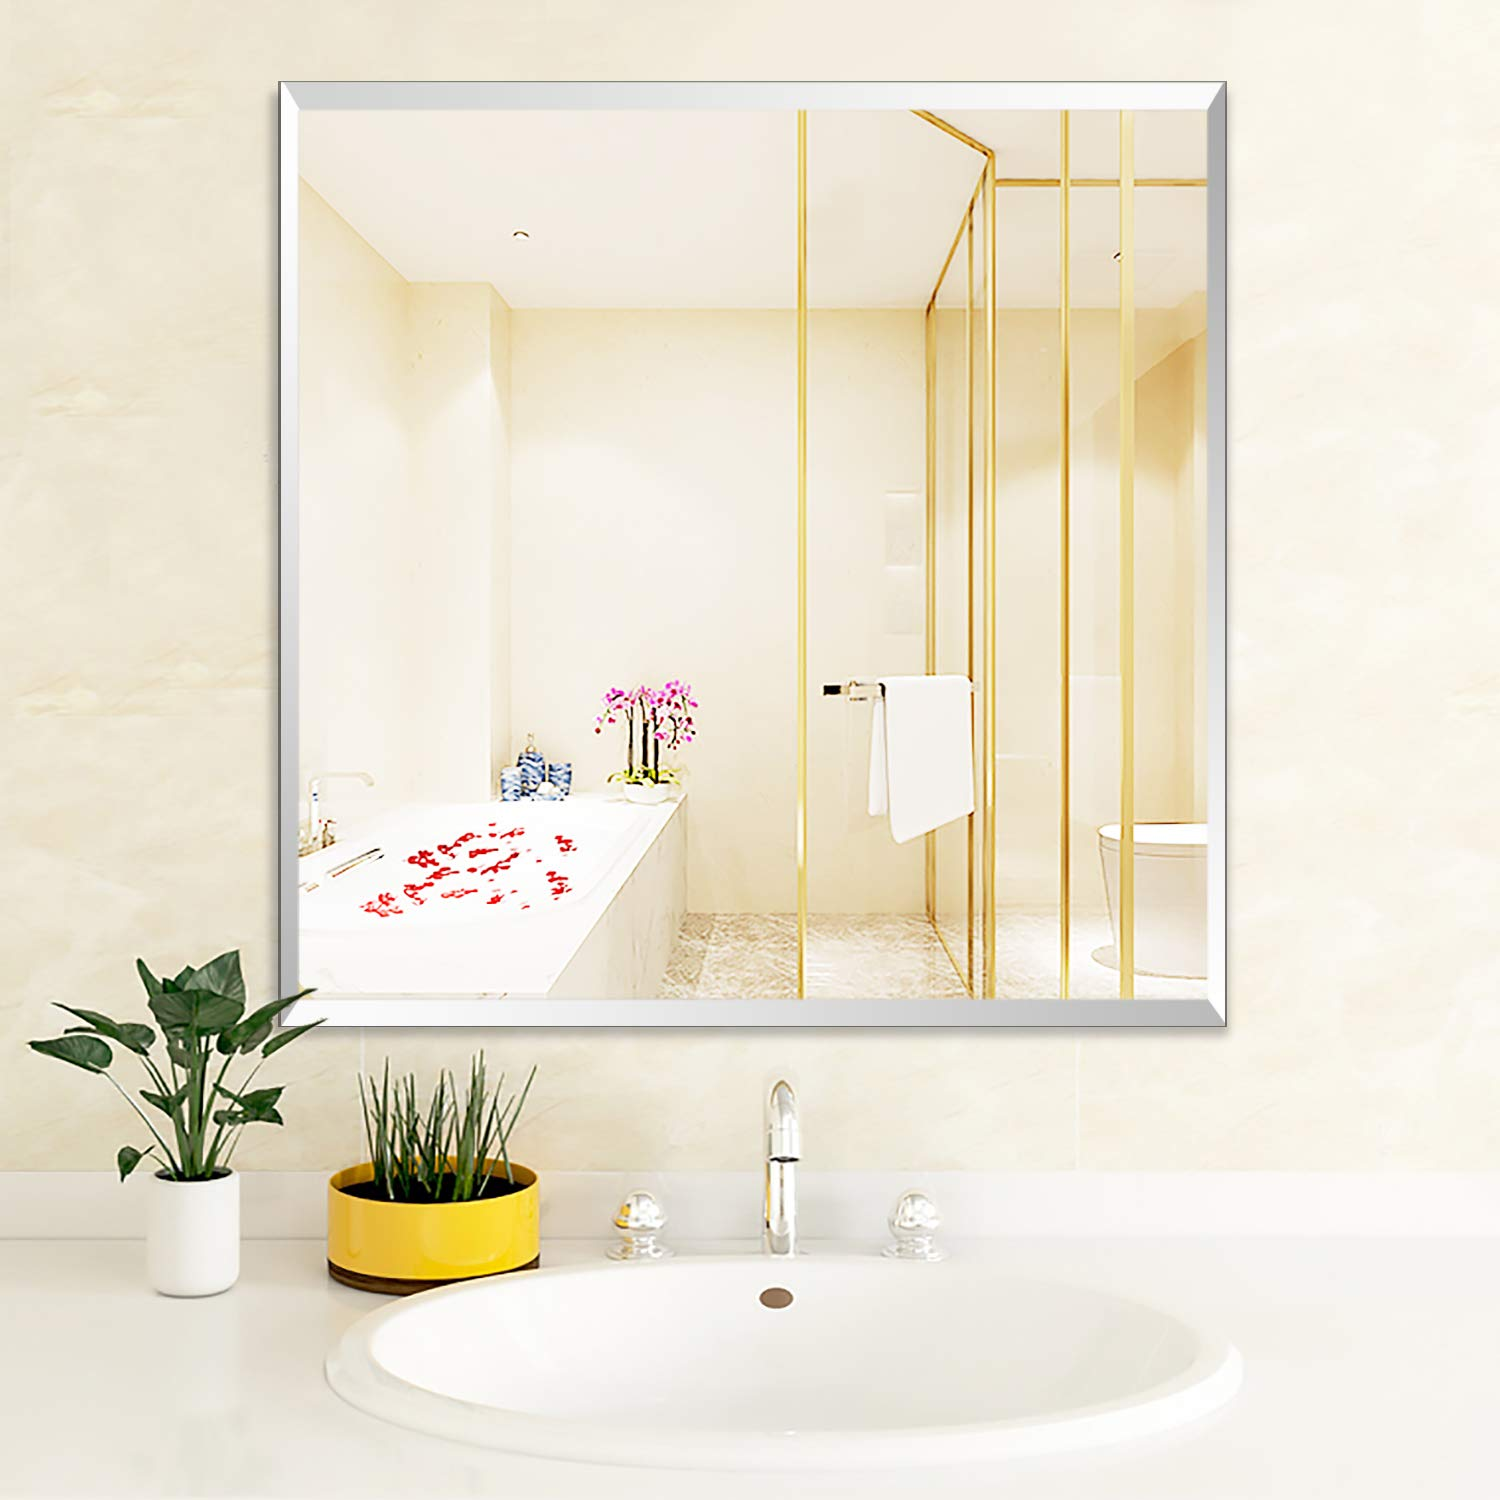 PexFix Large Frameless Square Wall Mirror with Polished Edge | Bathroom, Vanity, Bedroom Rectangular Mirror Wall-Mounted Mirrors | 24-inch x 24-inch (24'' W x 24'' H)